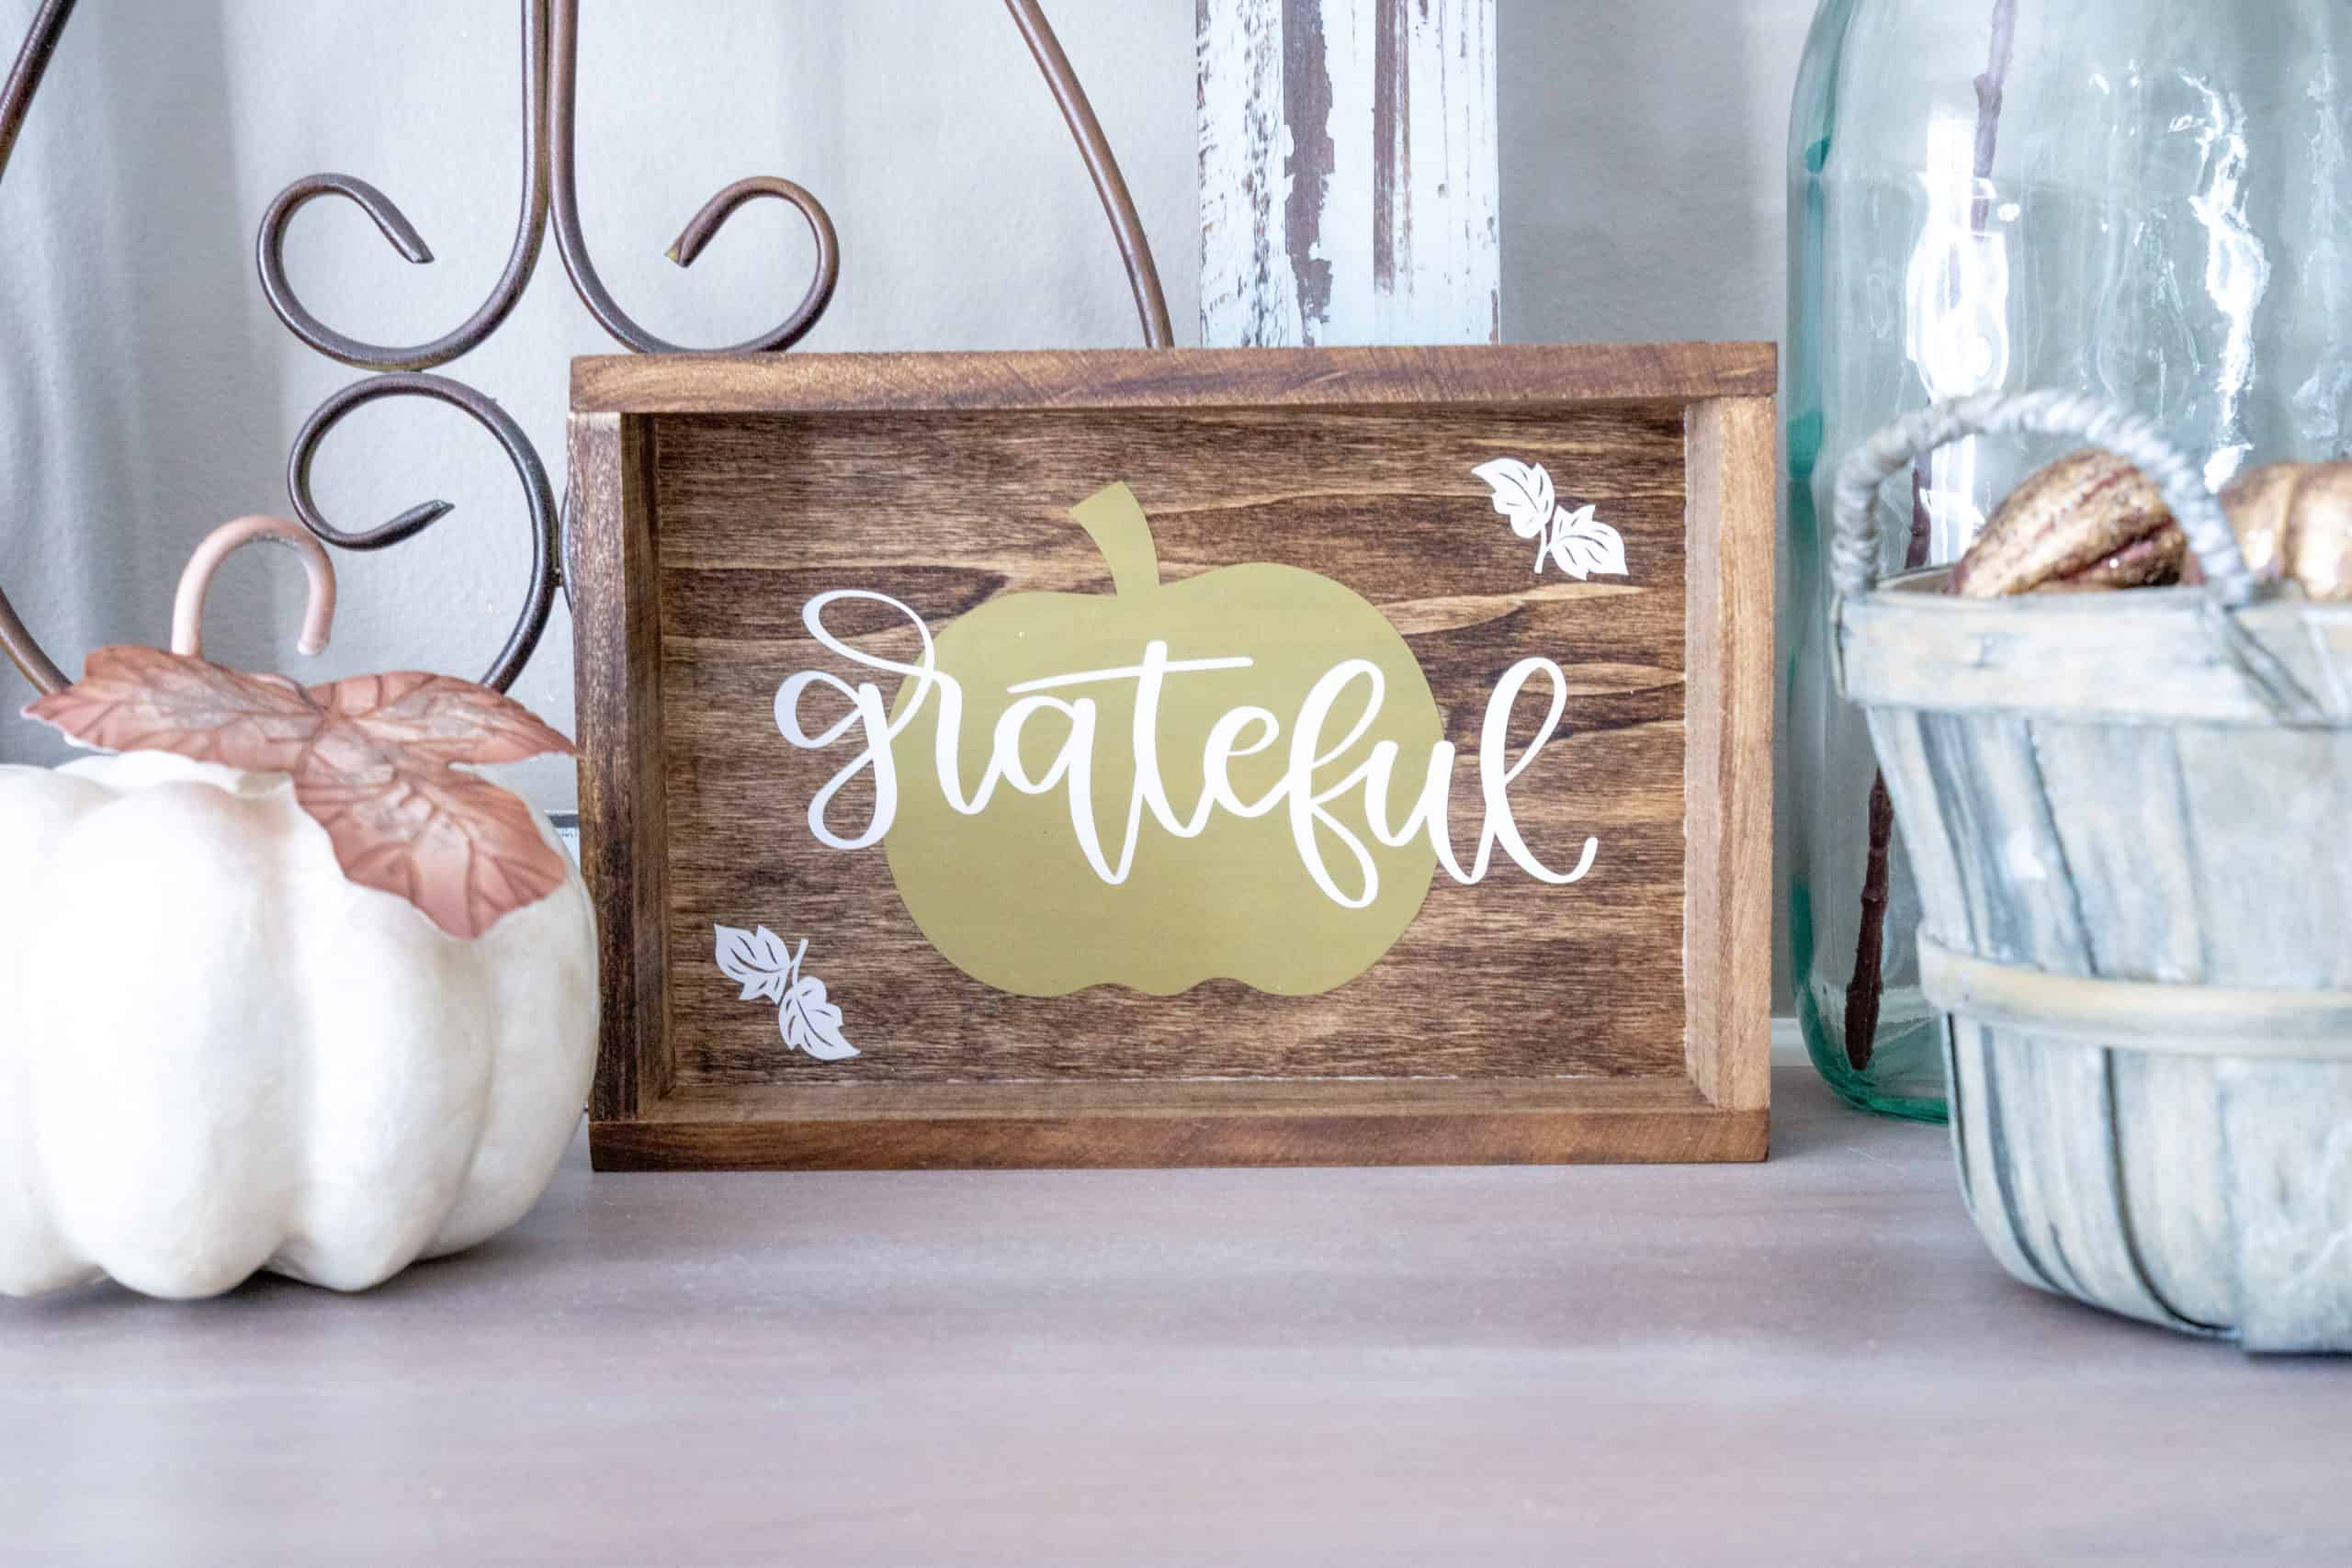 Add a simple touch of fall to your decor with this easy DIY fall sign using Cricut.  It's easy to make, inexpensive, and customizable.